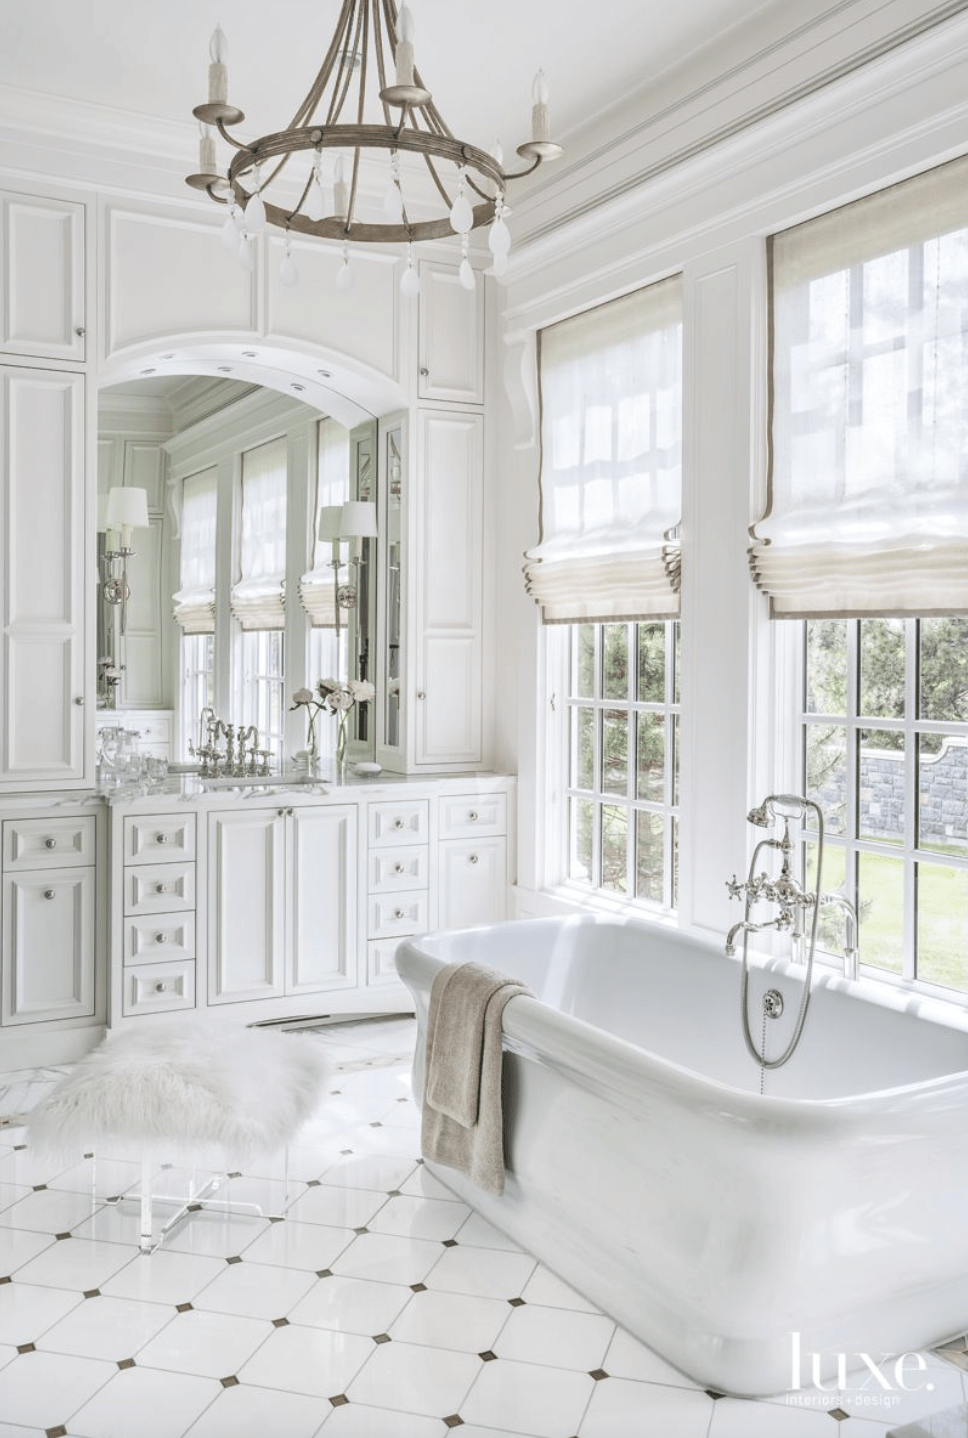 White master bath Inspiration - Luxe Interiors and Homes